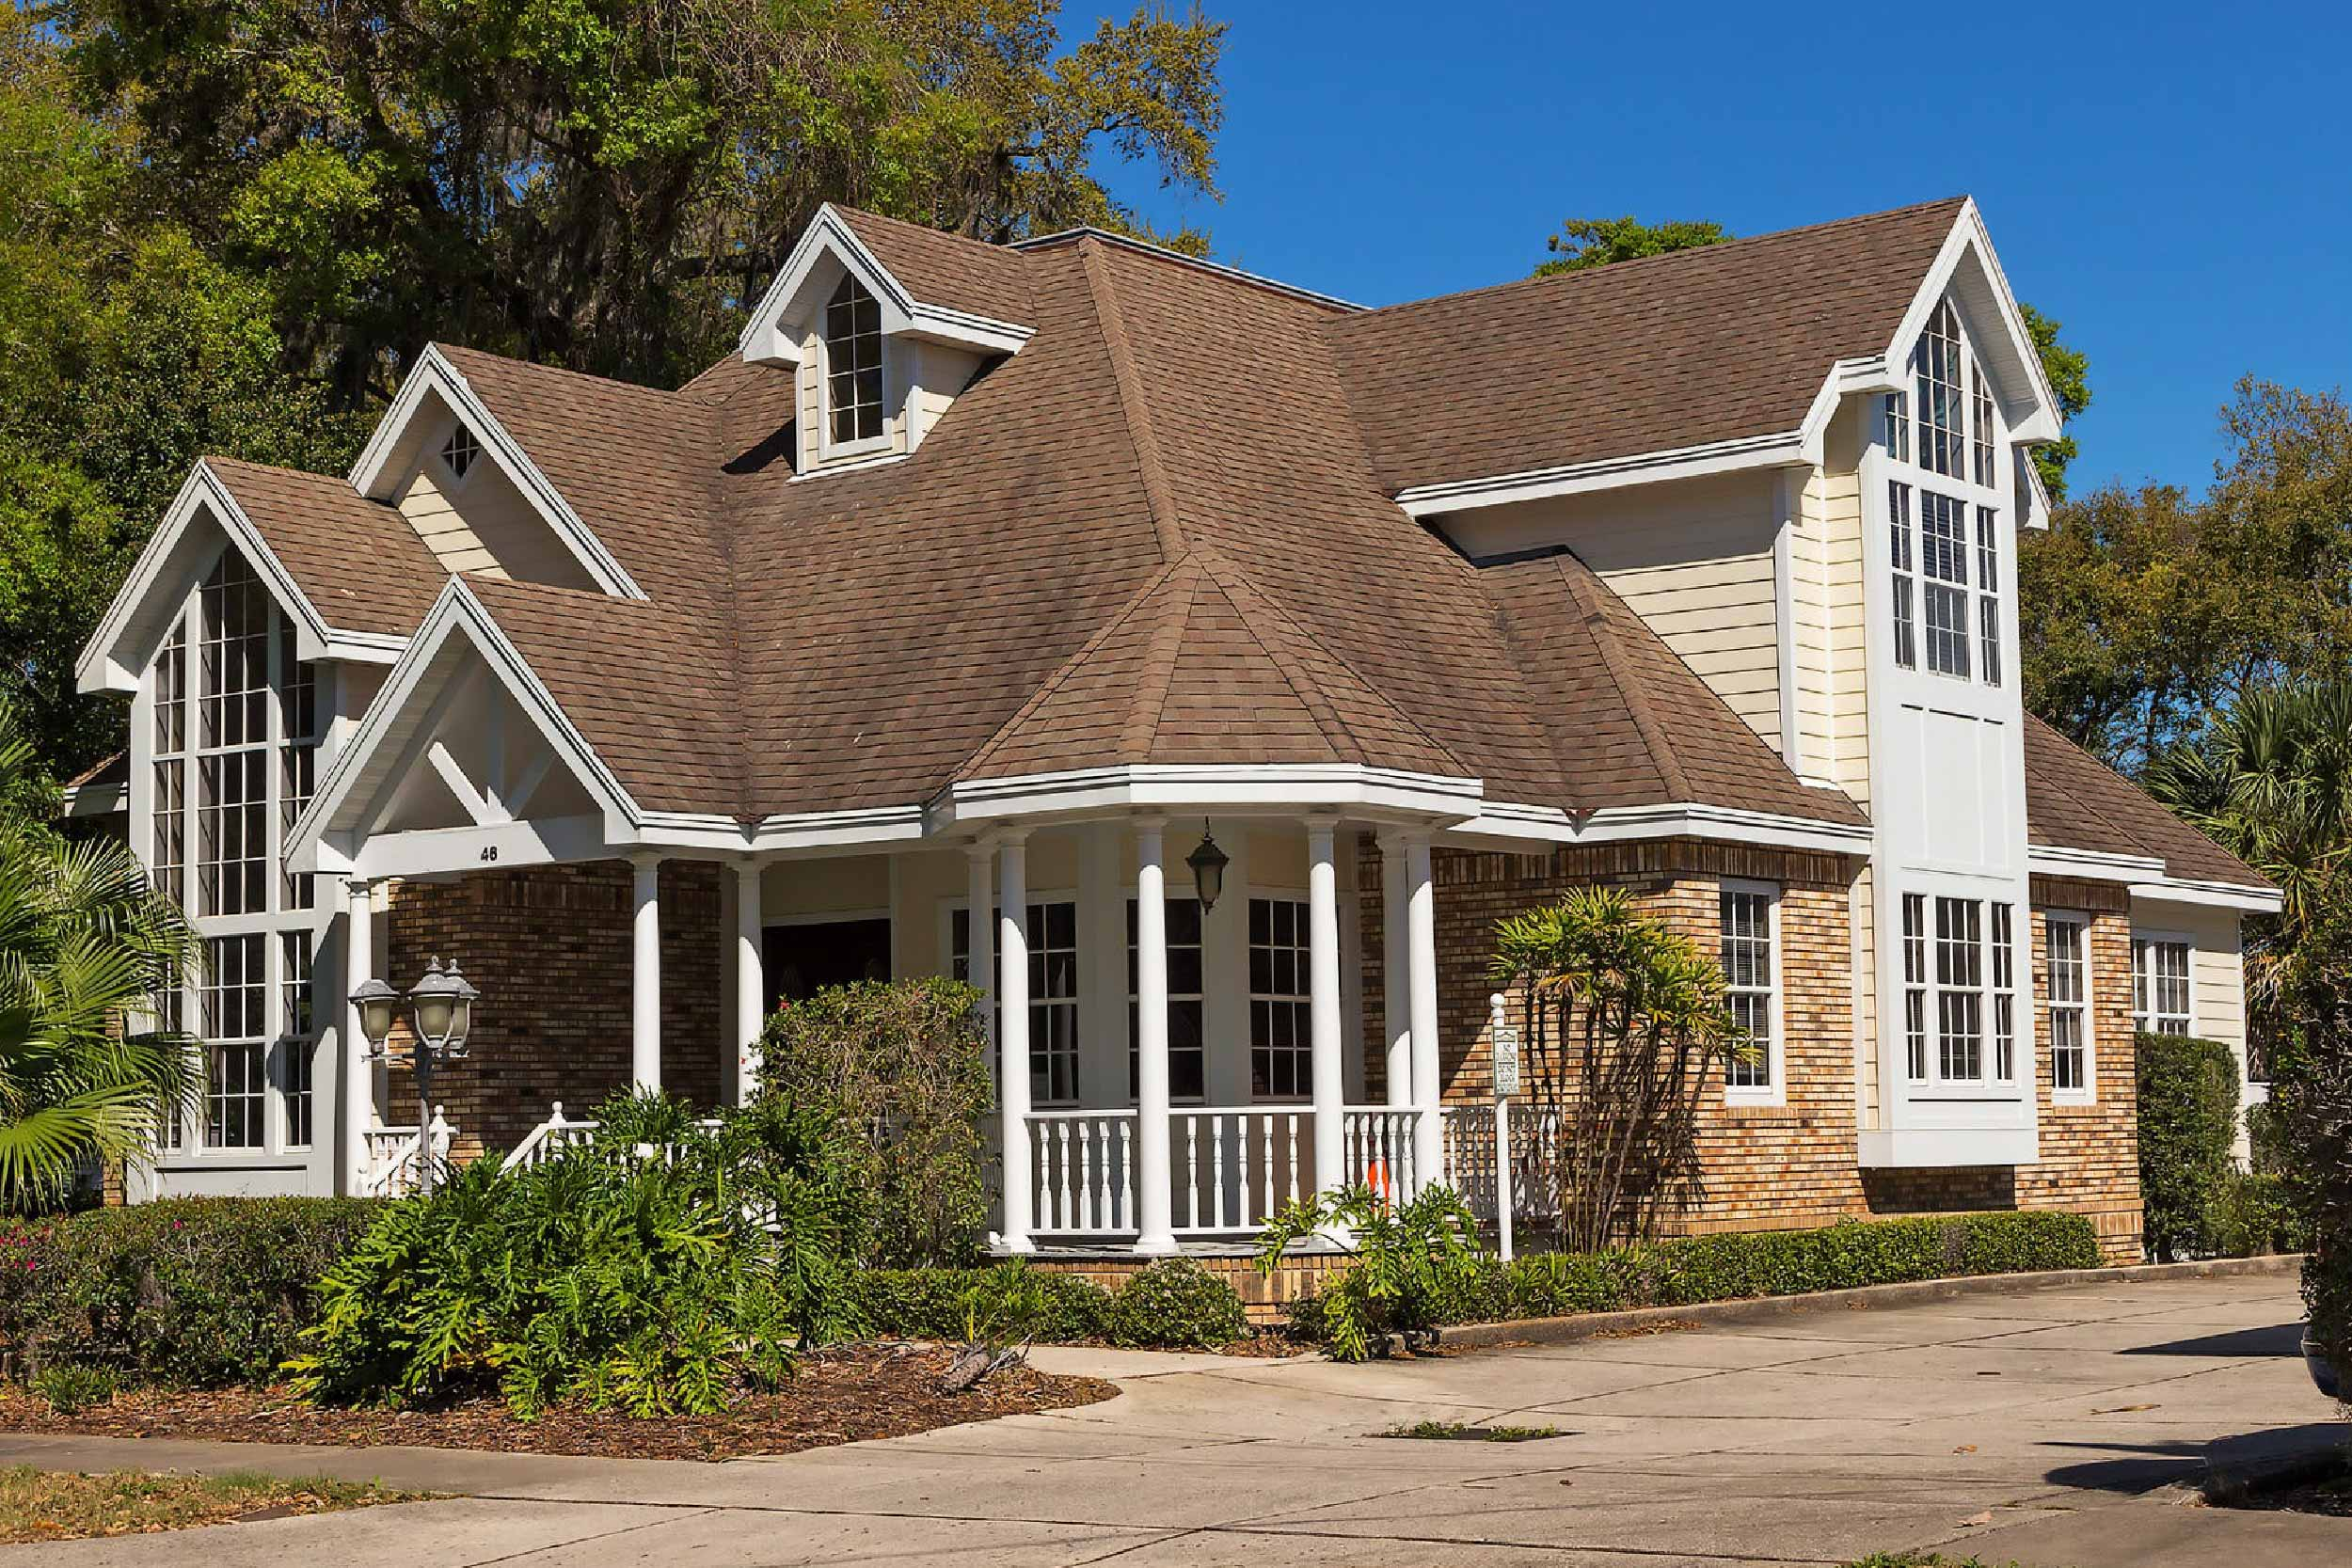 Best Roofing Company in Burnsville MN